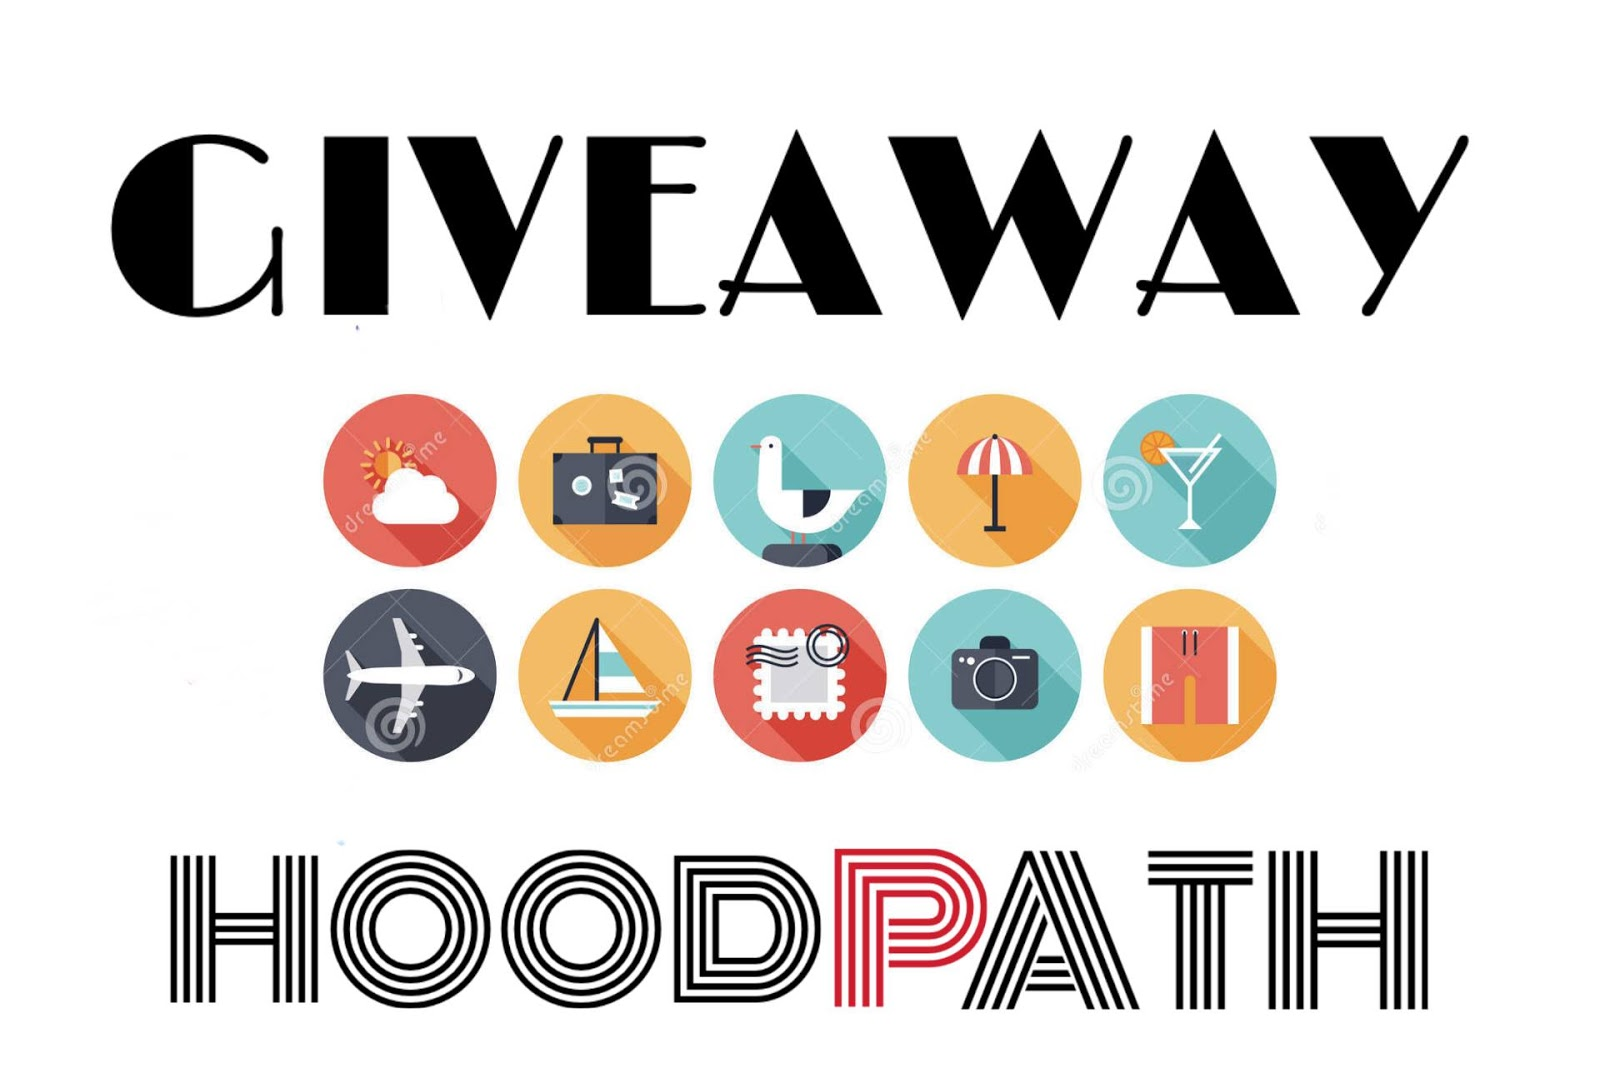 HOODPATH Travel Blog Giveaway 1.0